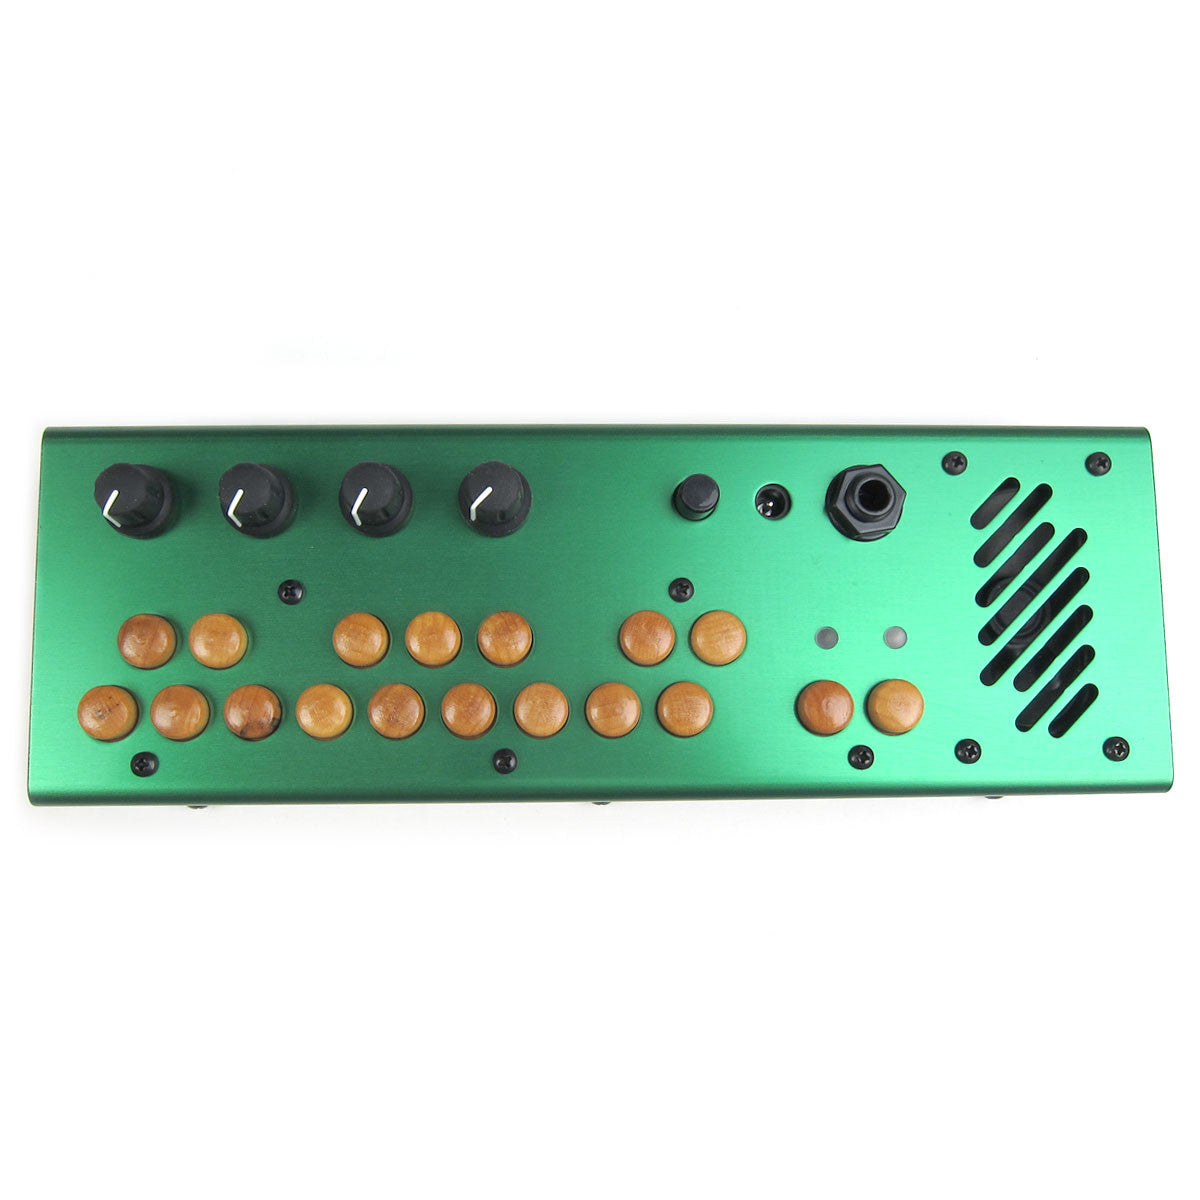 Critter & Guitari: Critter & Guitari: Pocket Piano - Green top